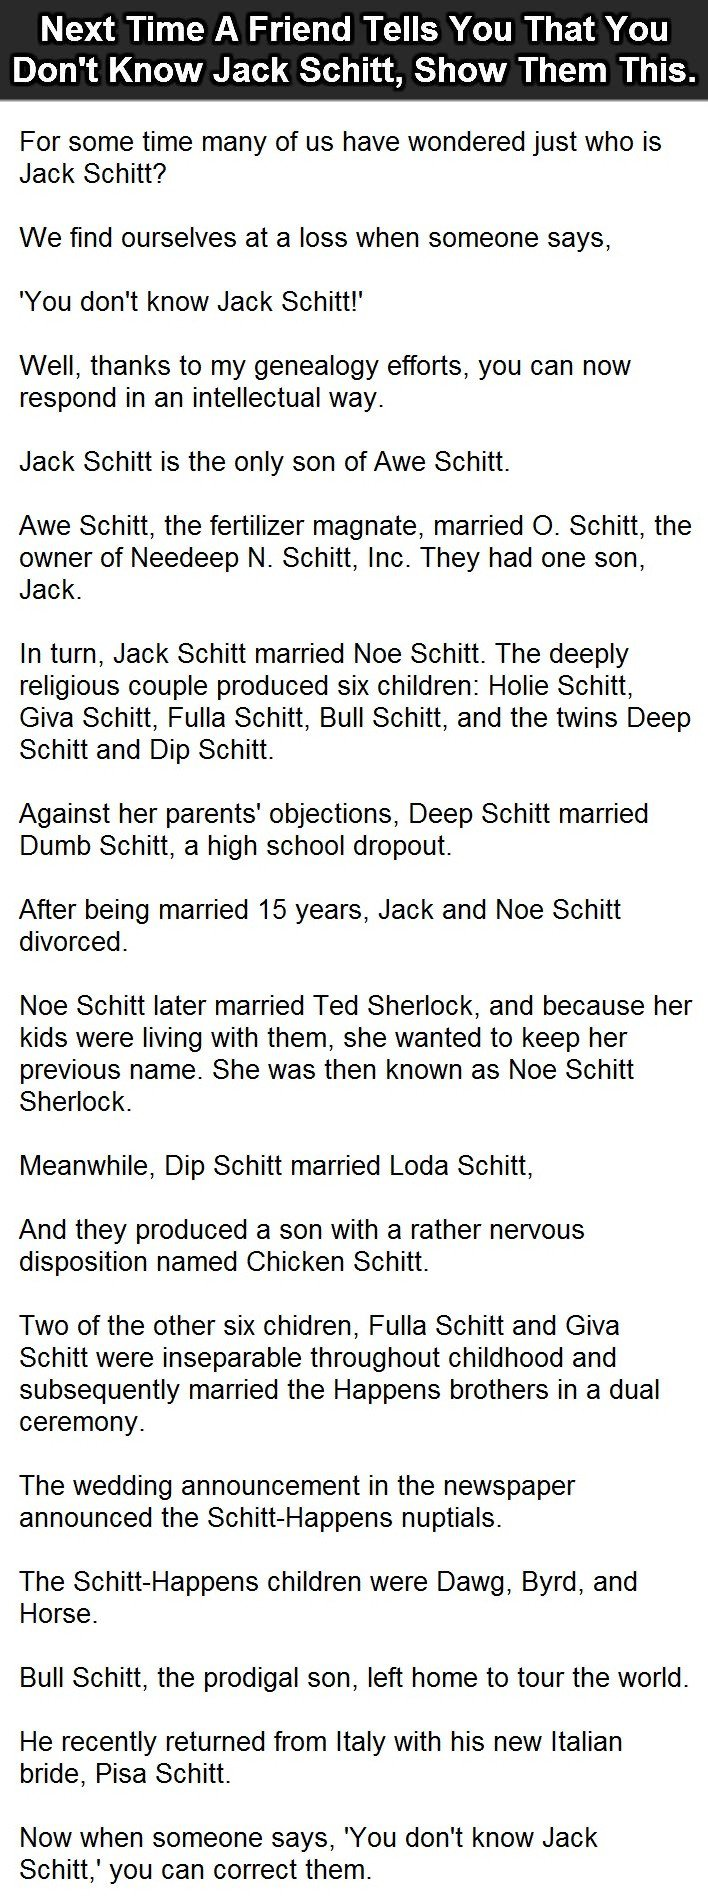 Next time a friend tells you that you dont know jack schitt, show them this